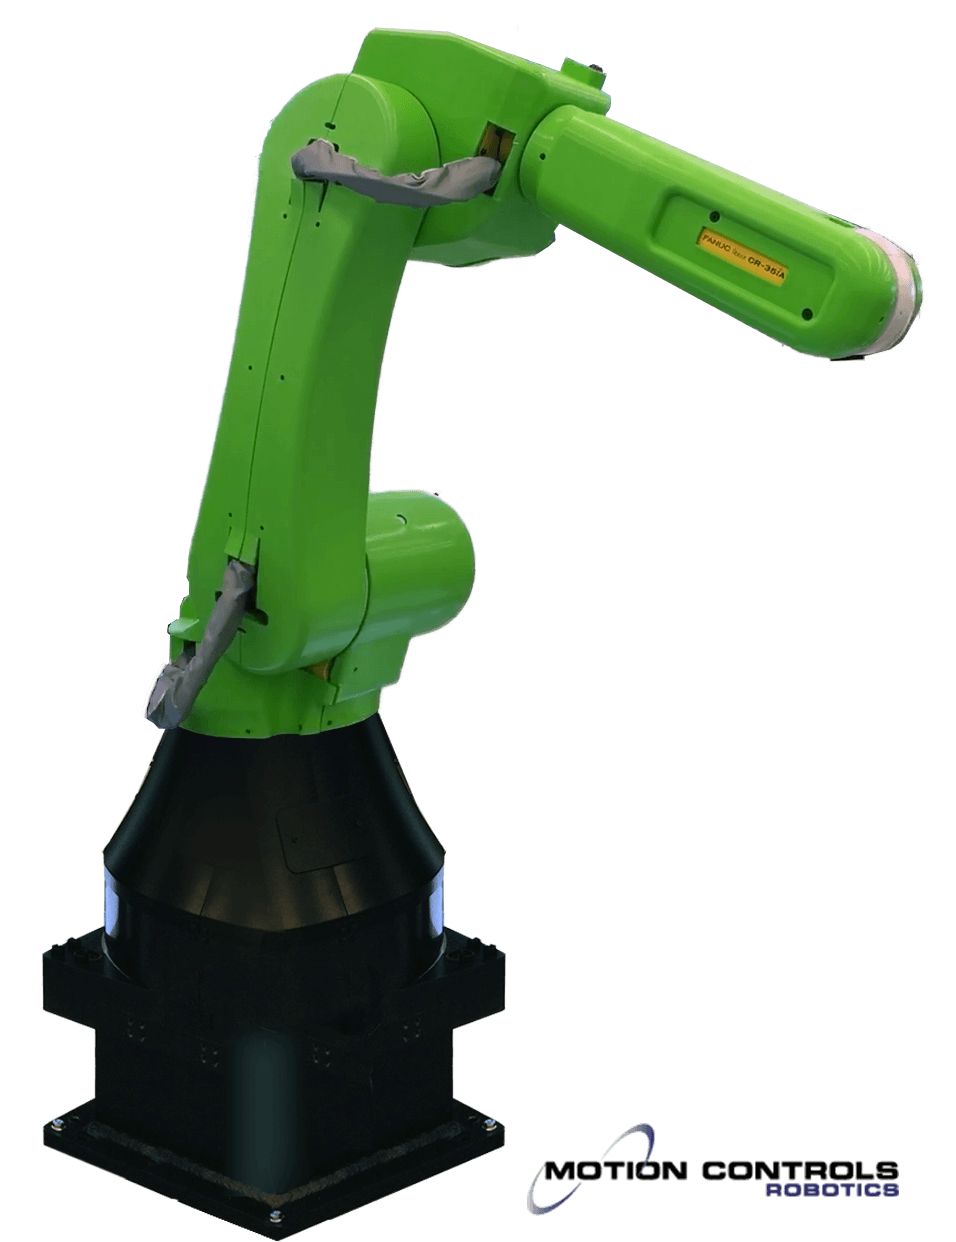 FANUC CR35iA – Collaborative Robot